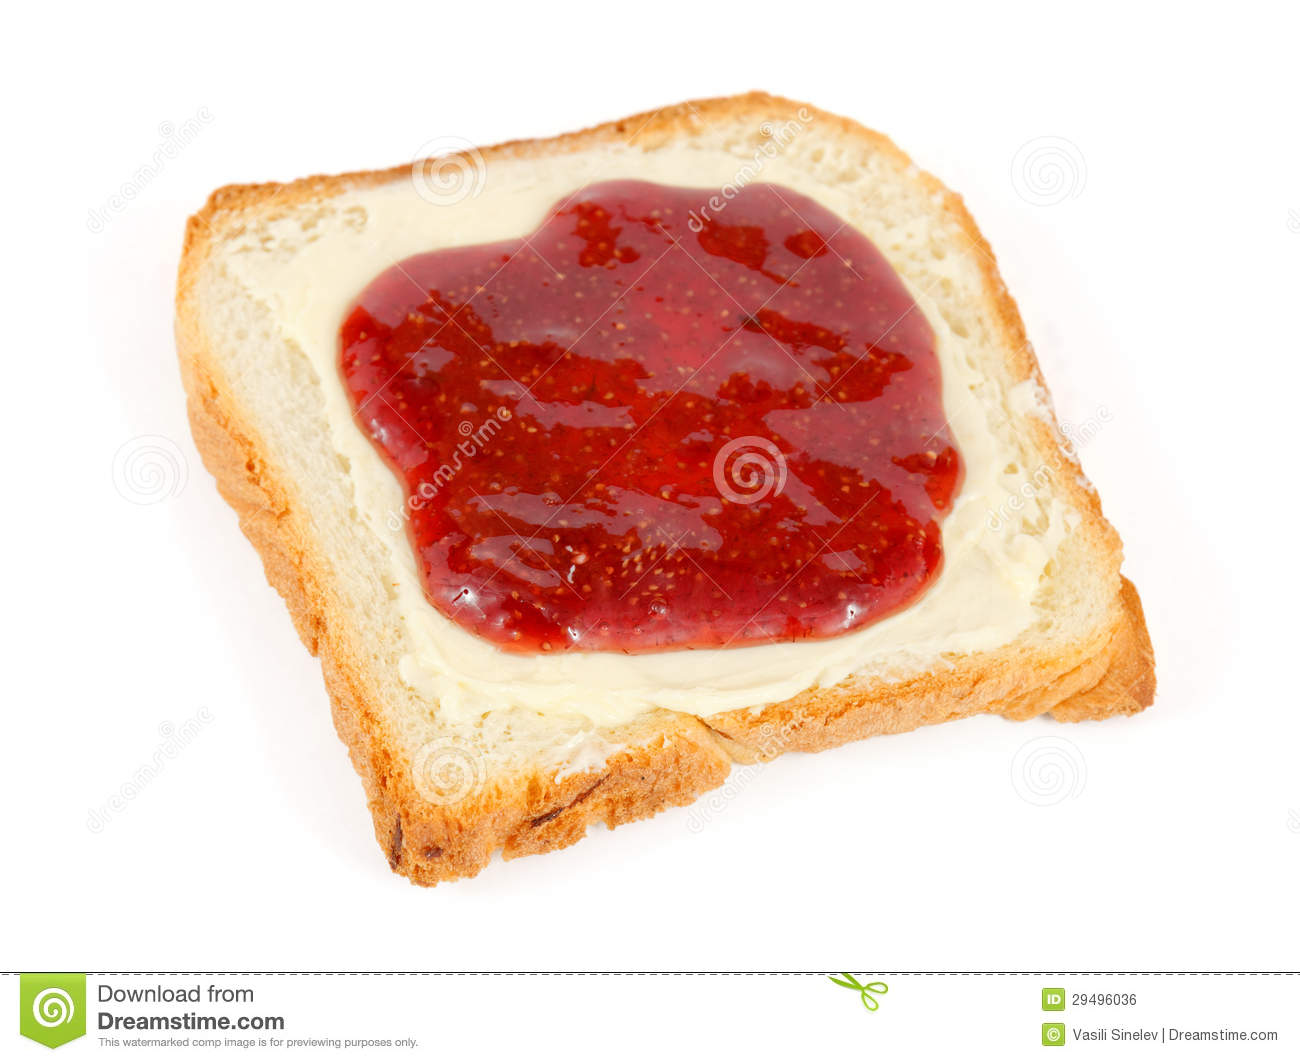 Bread Slice With Butter And Jam Royalty Free Stock Image - Image ...